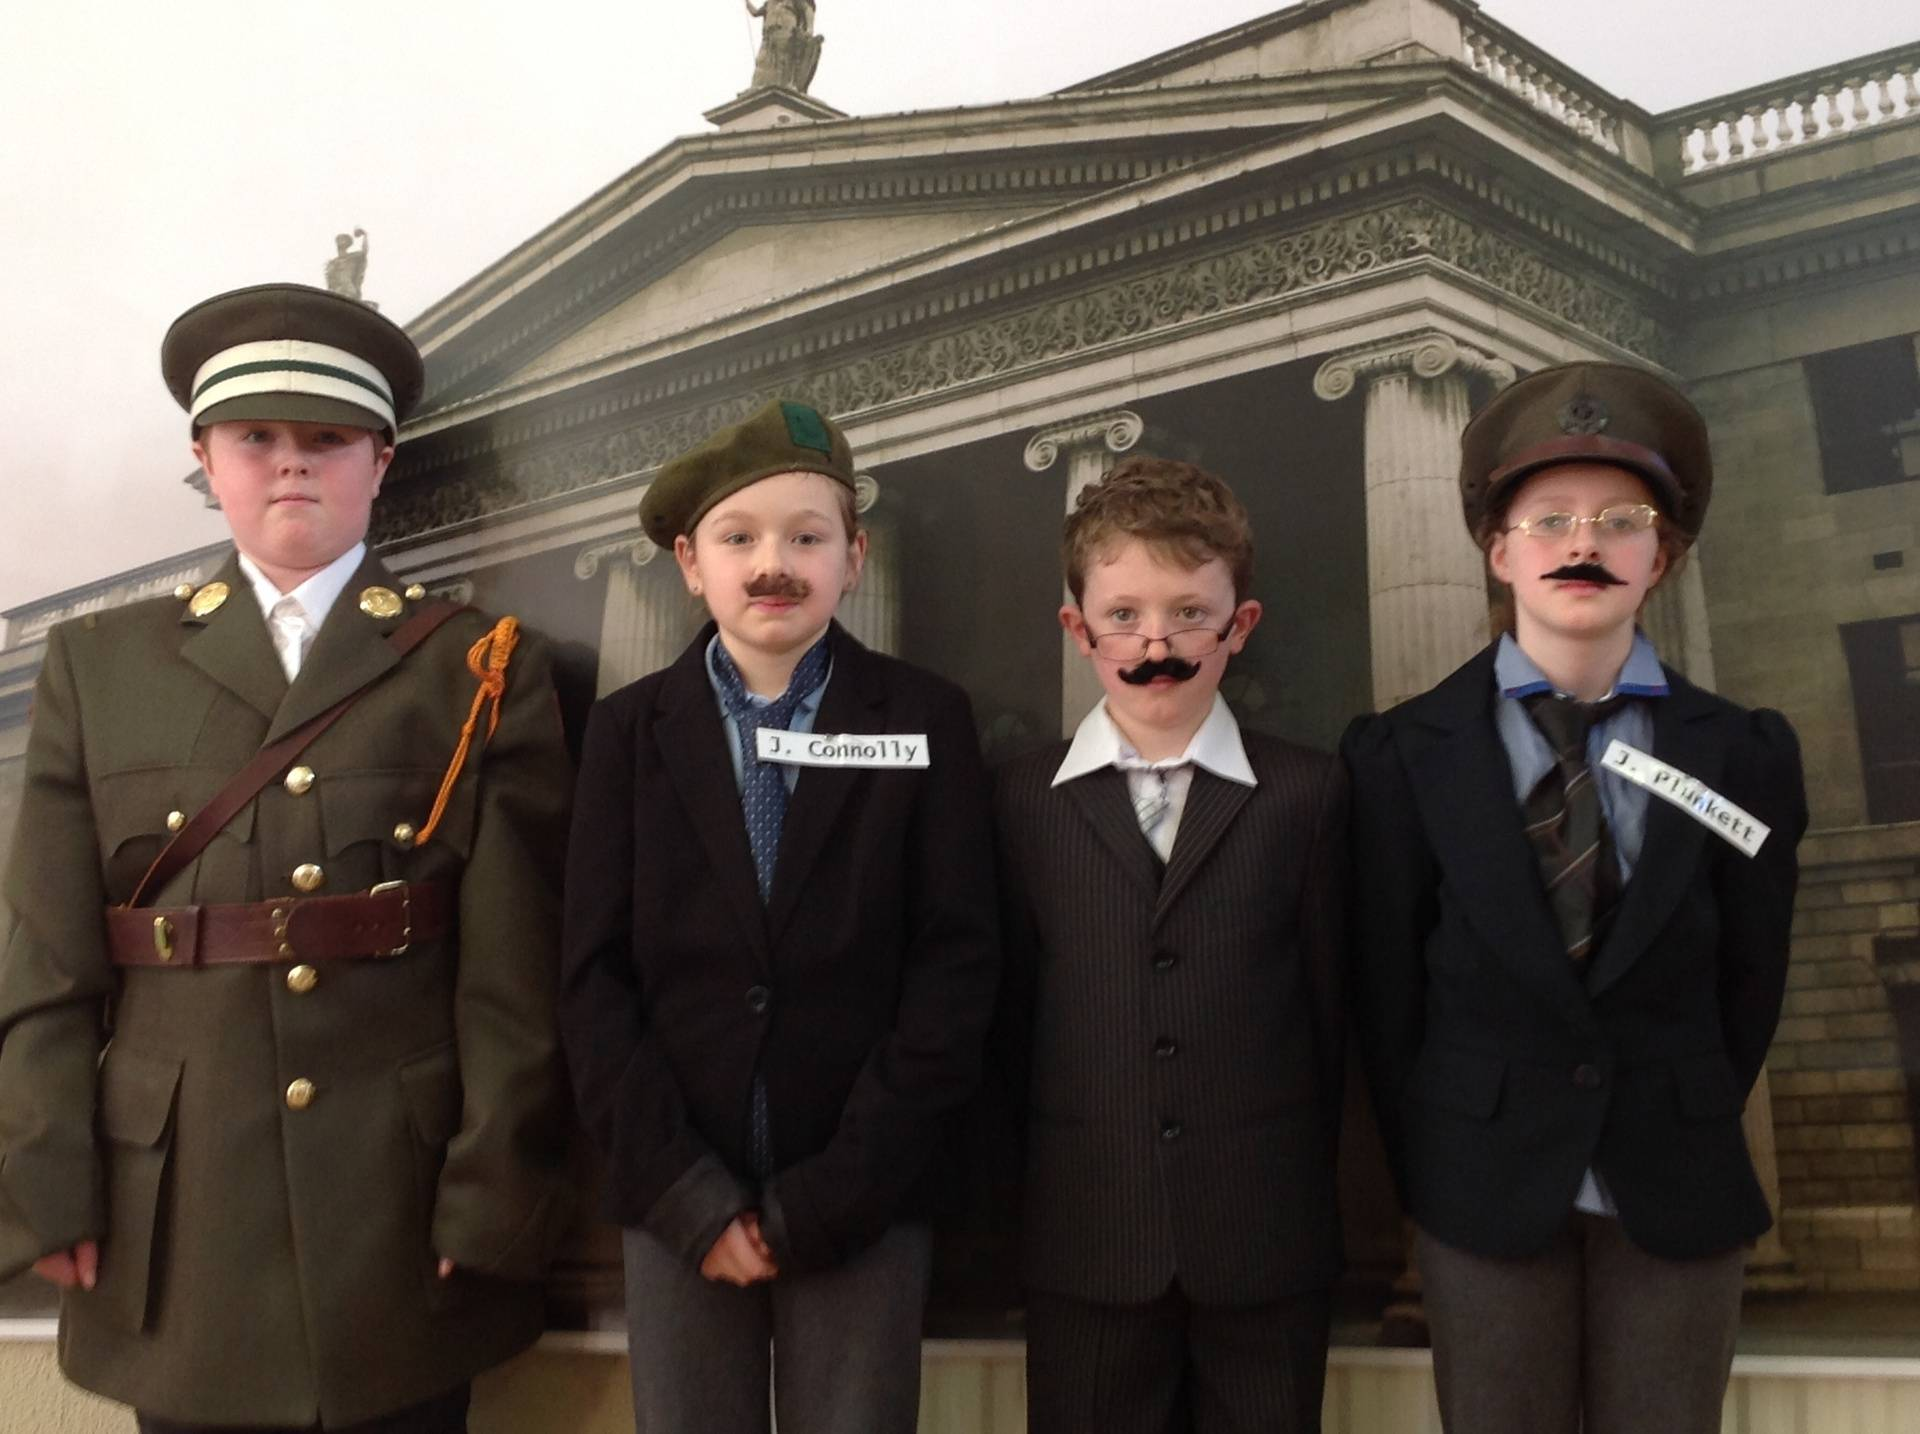 Leaders of the 1916 Rising